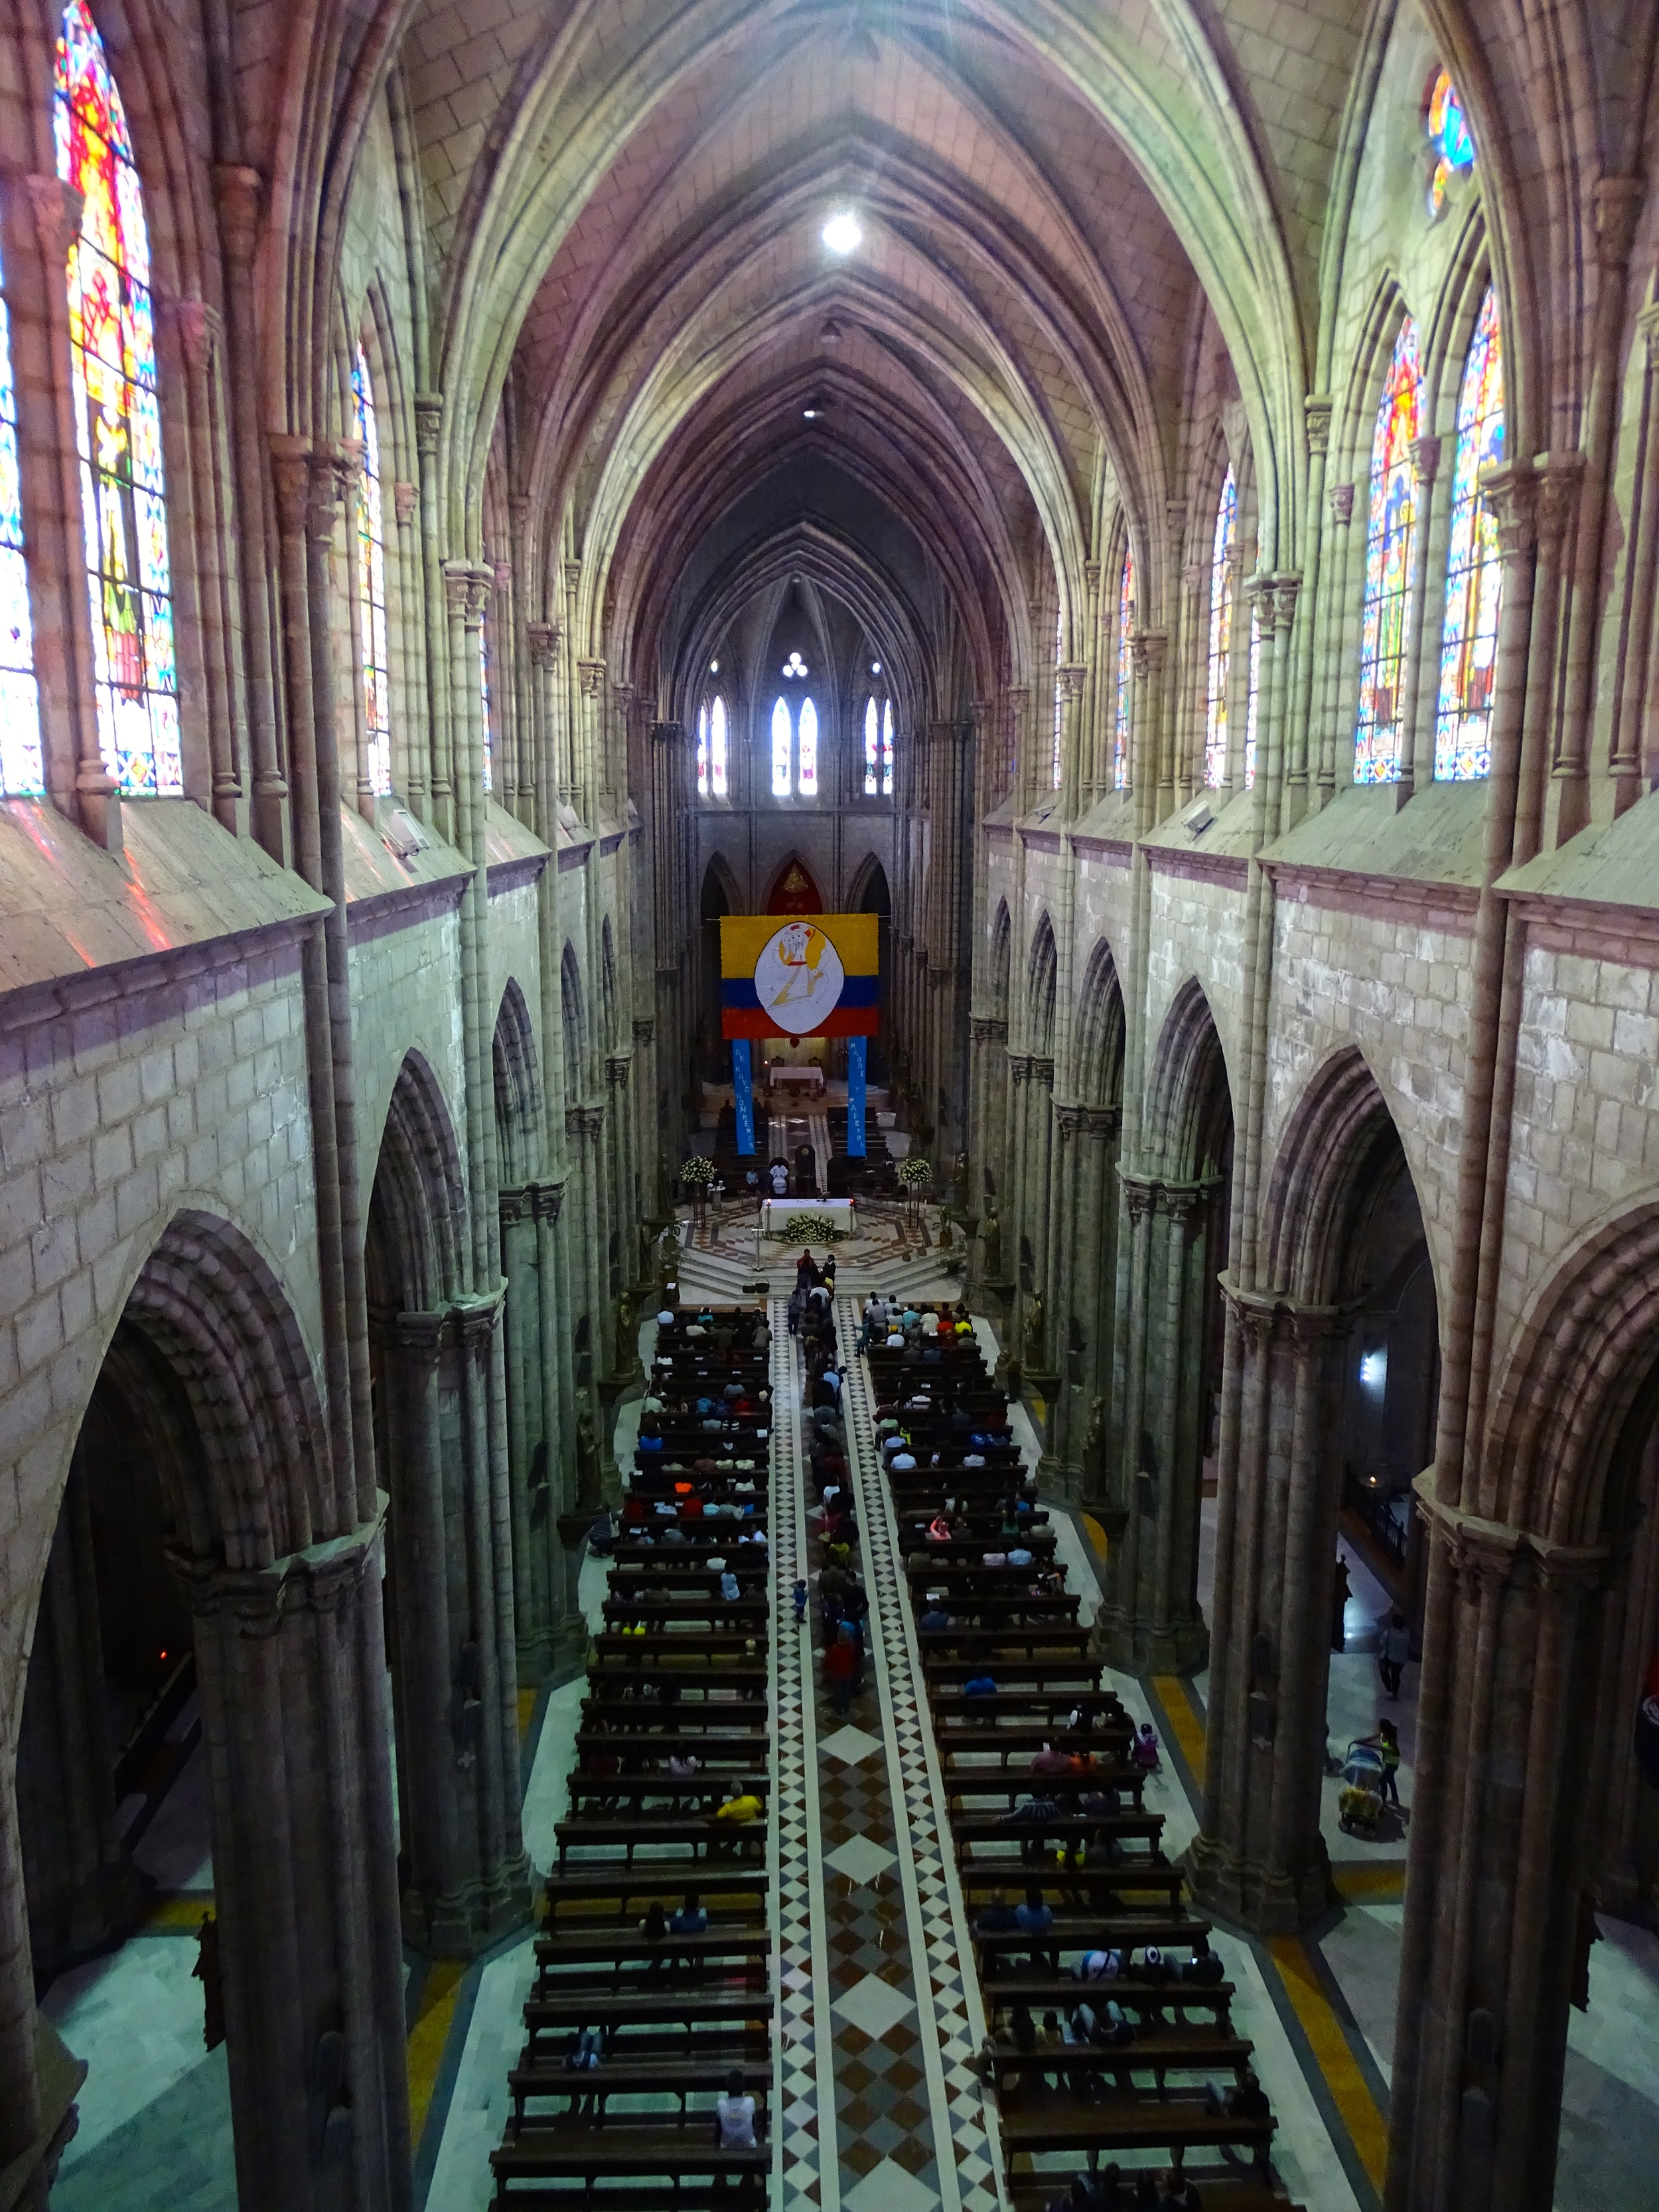 Here's the inside of the church.